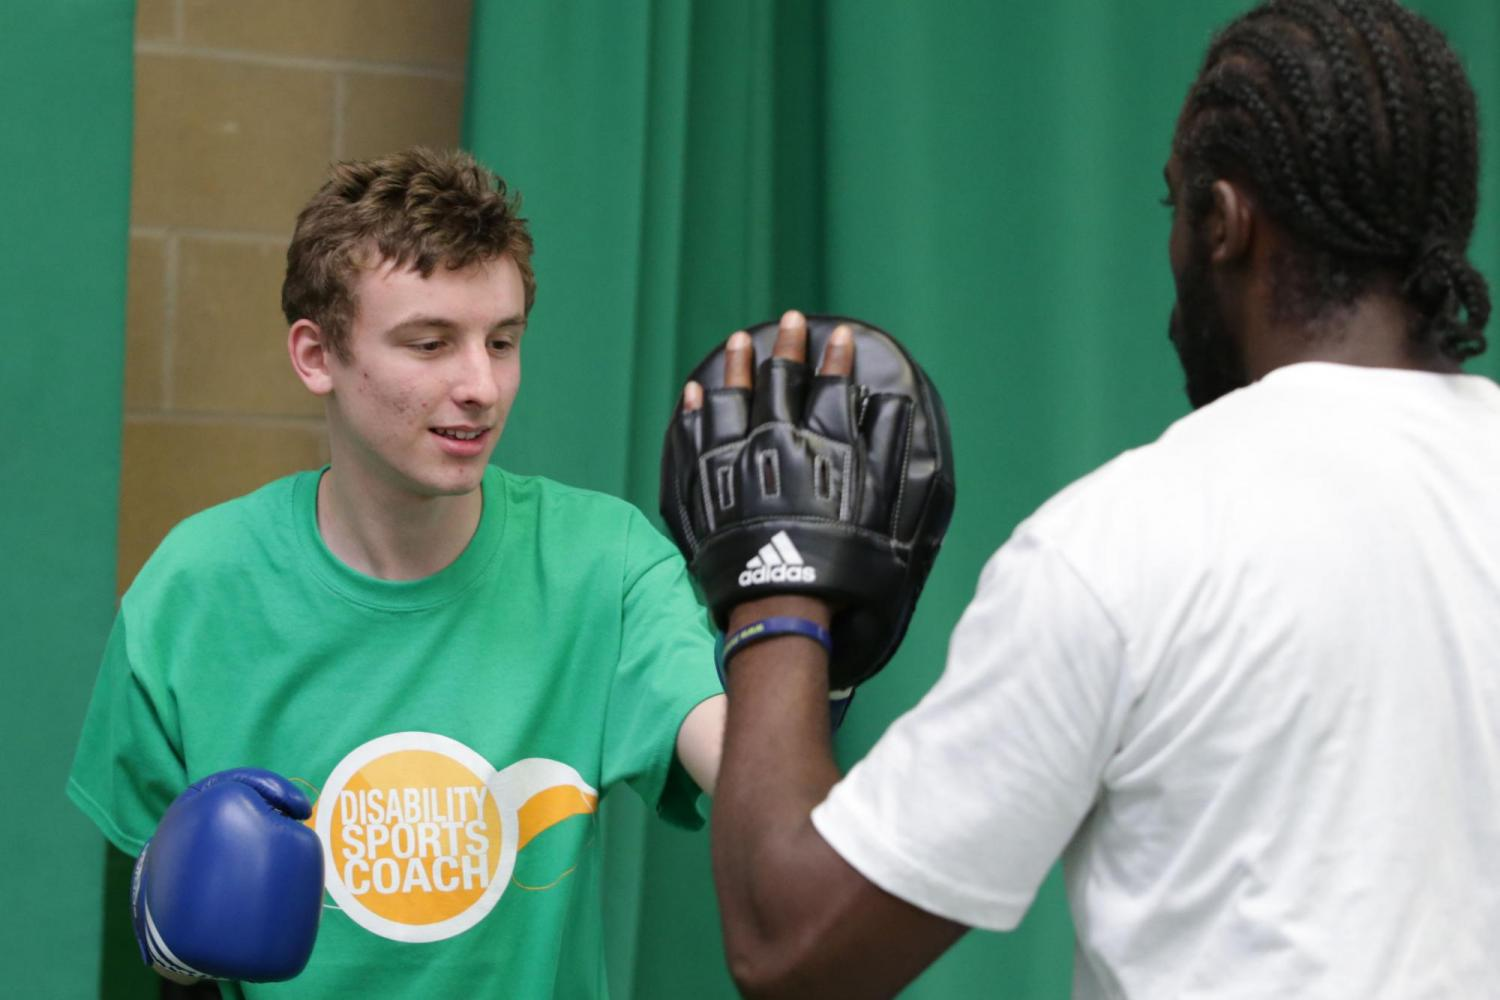 Disability Sports Coach Summer Festival 2017 - free sports event for all disabled people